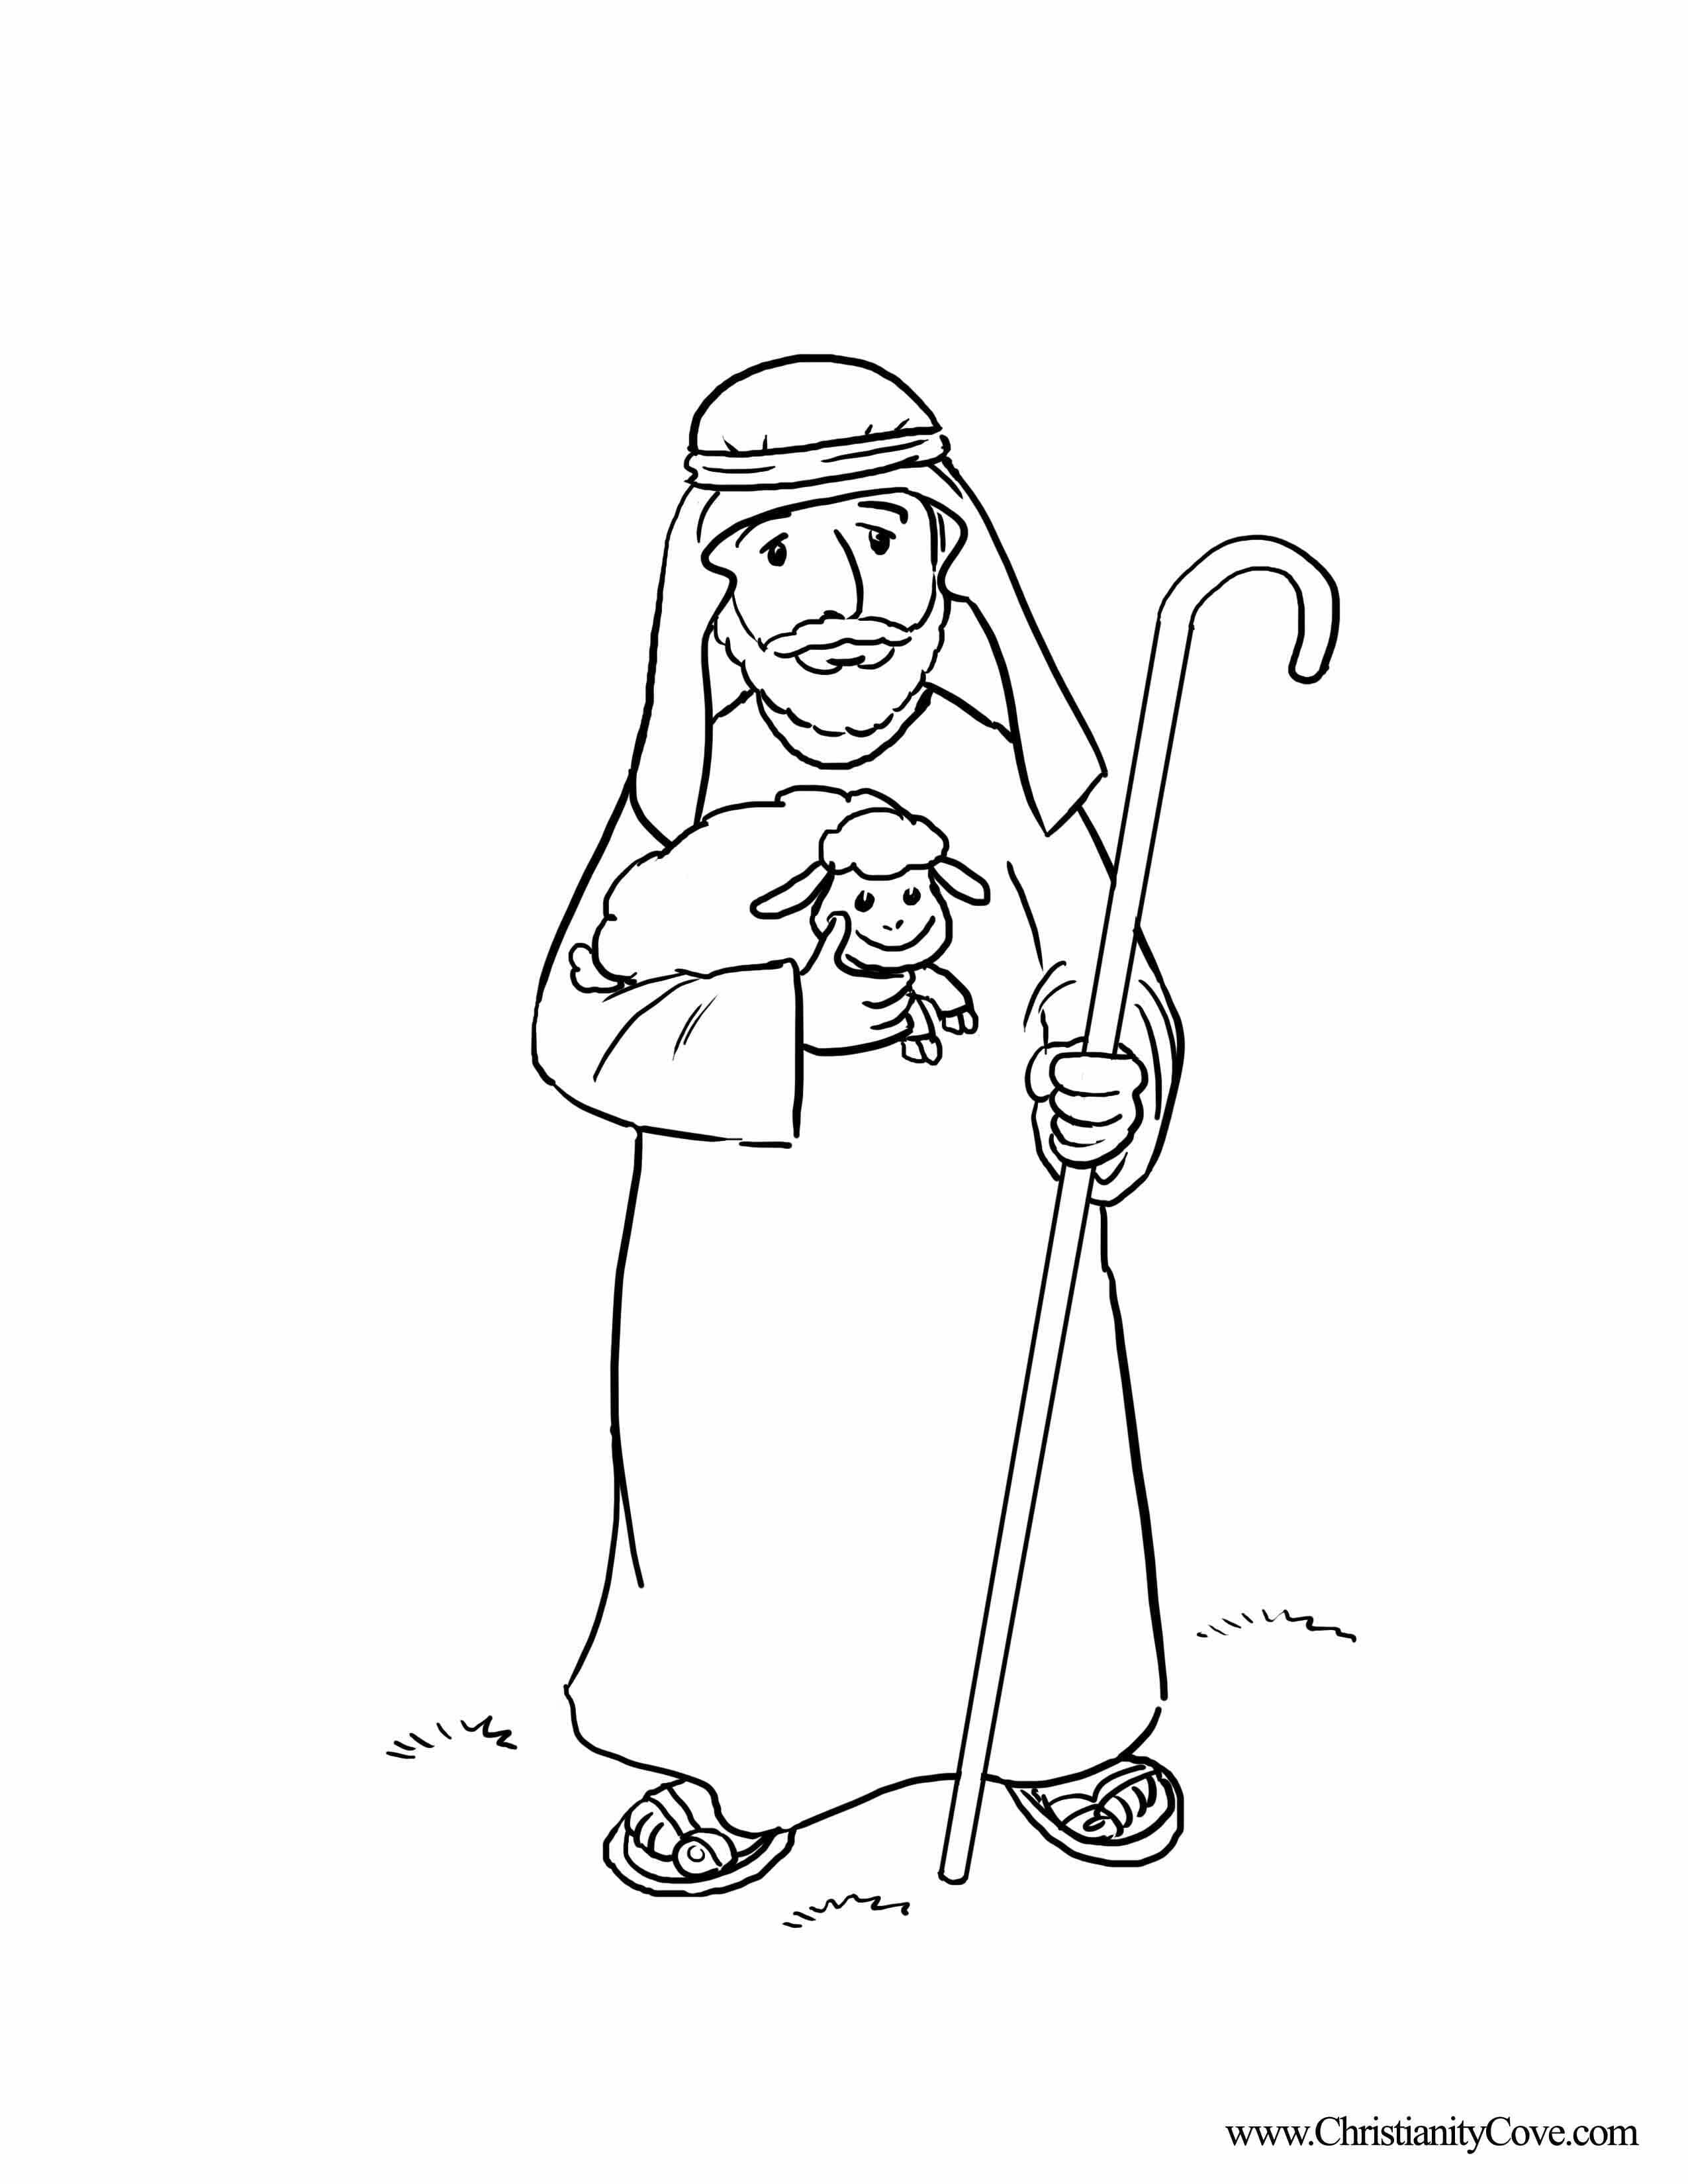 biblical coloring pages bible printables coloring pages for sunday school coloring pages biblical